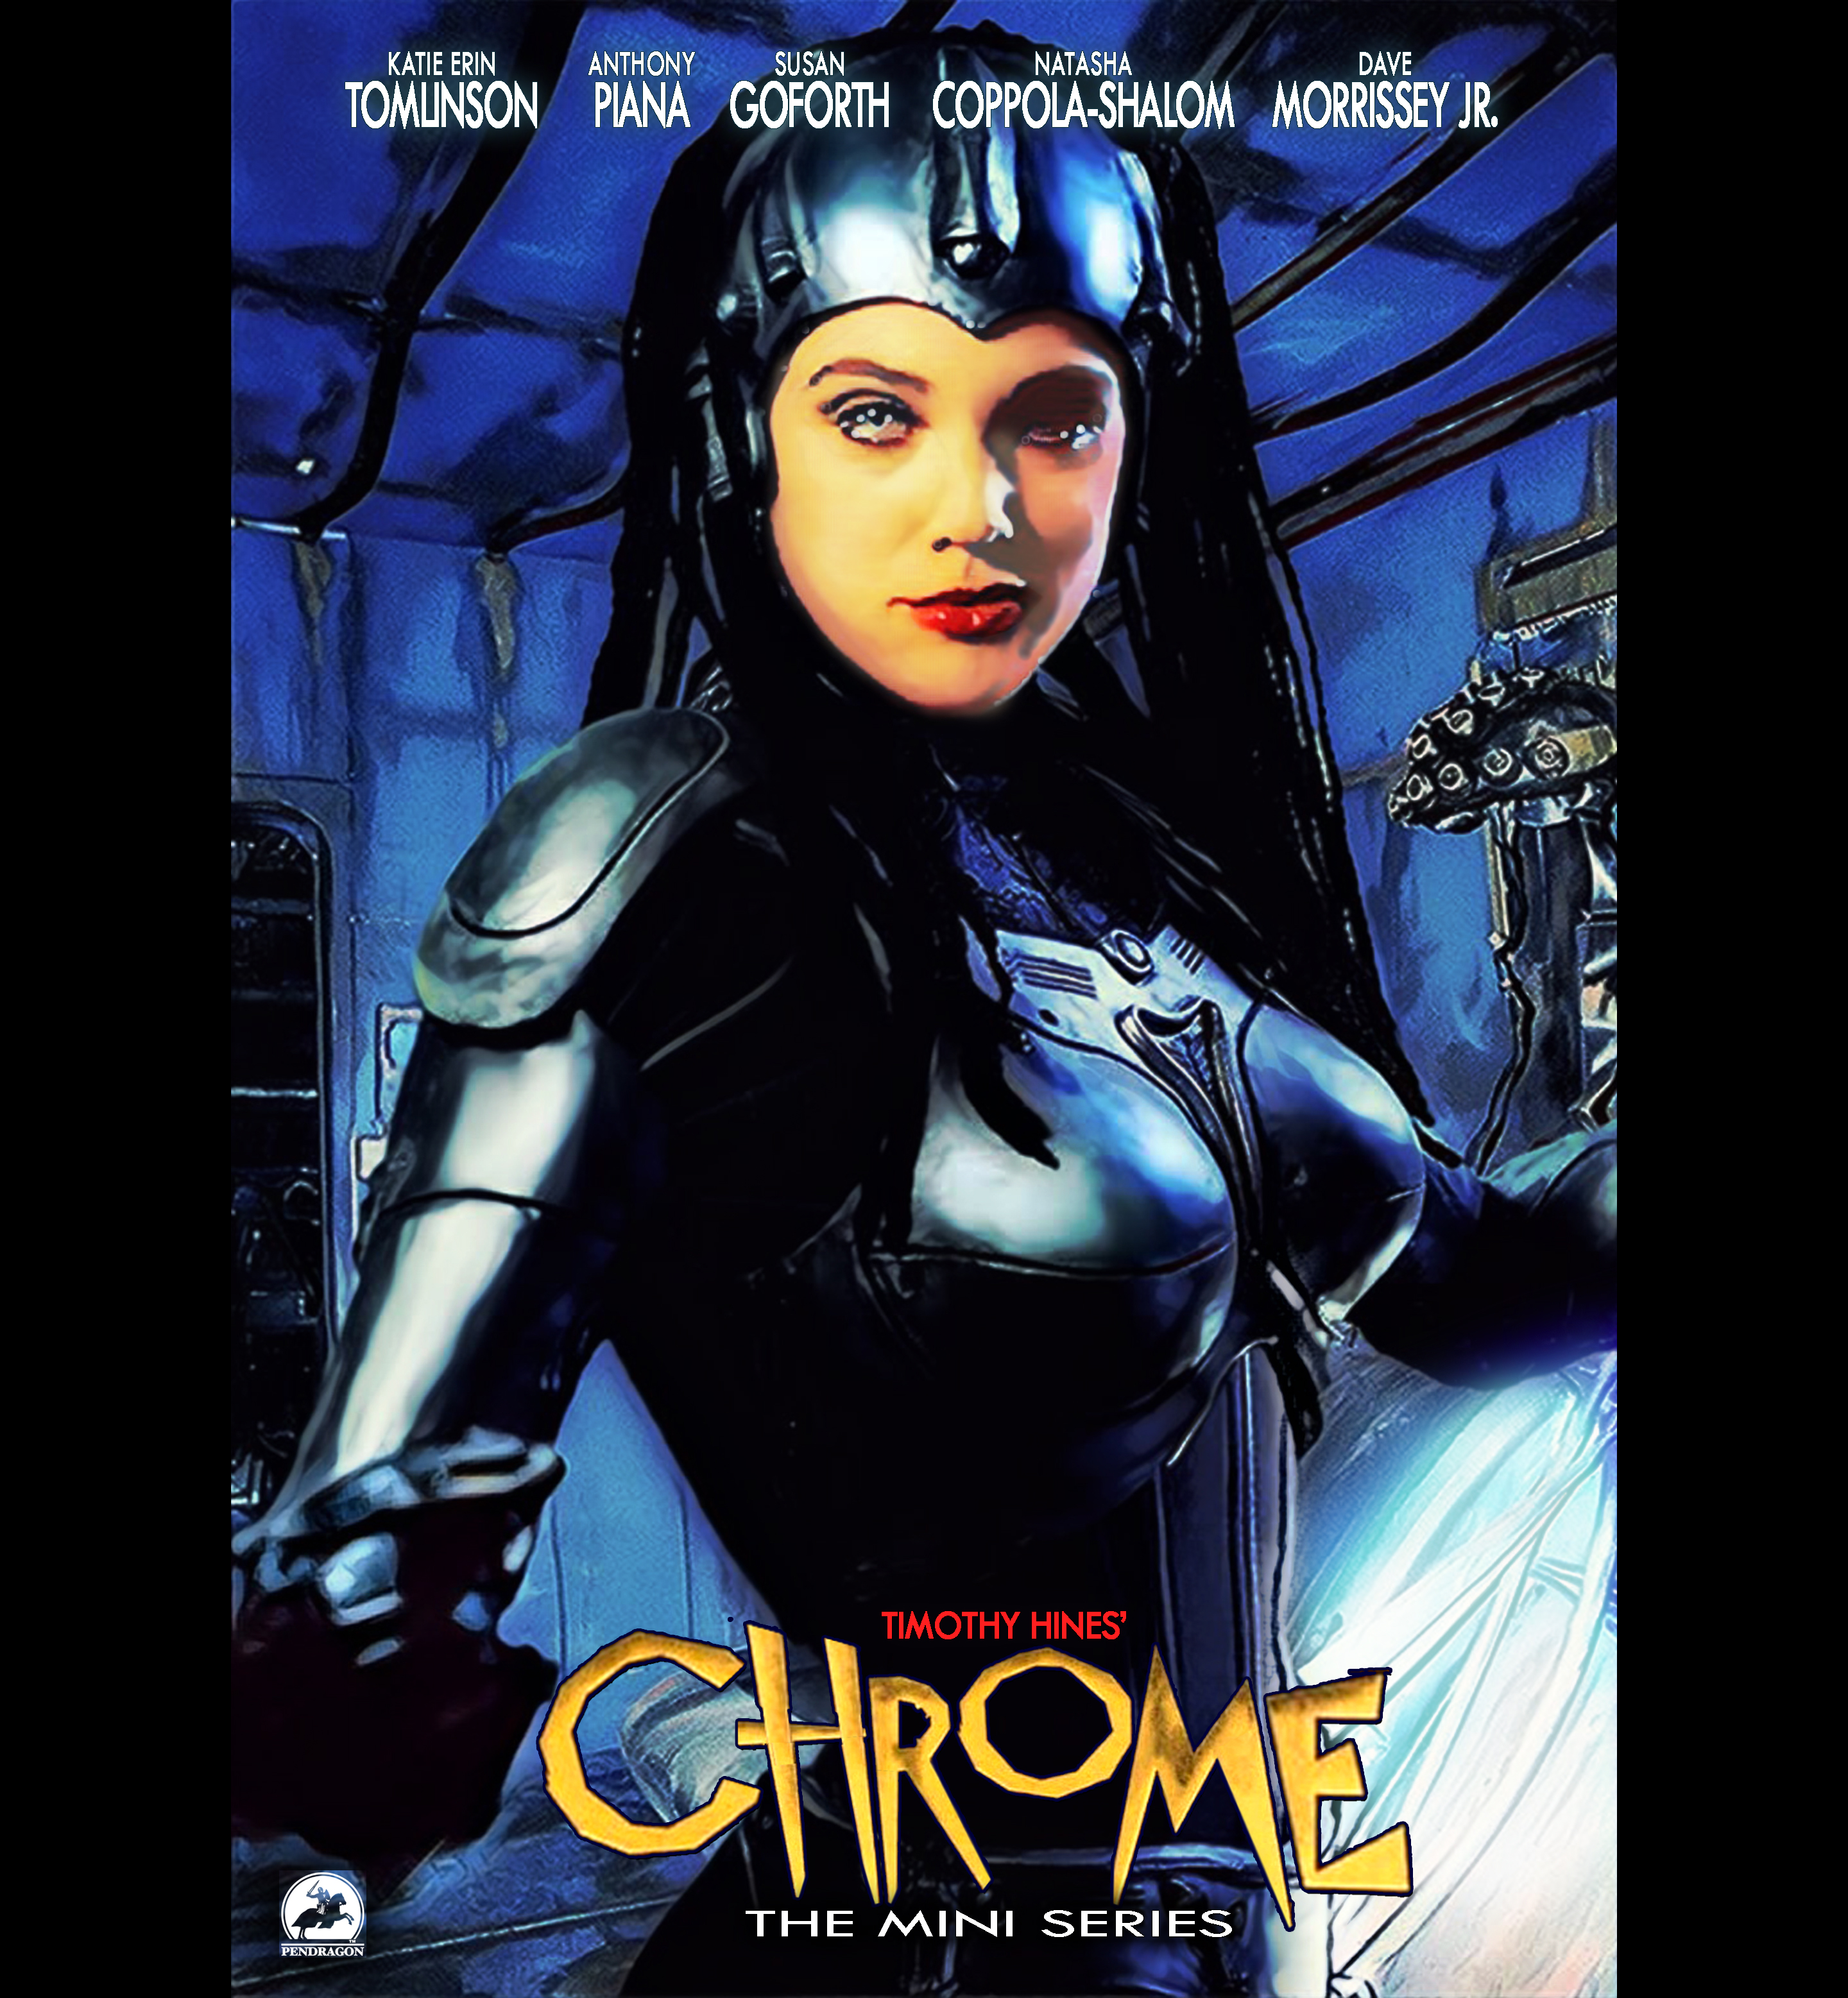 Chrome The Series coming to Amazon Prime Video UK this month